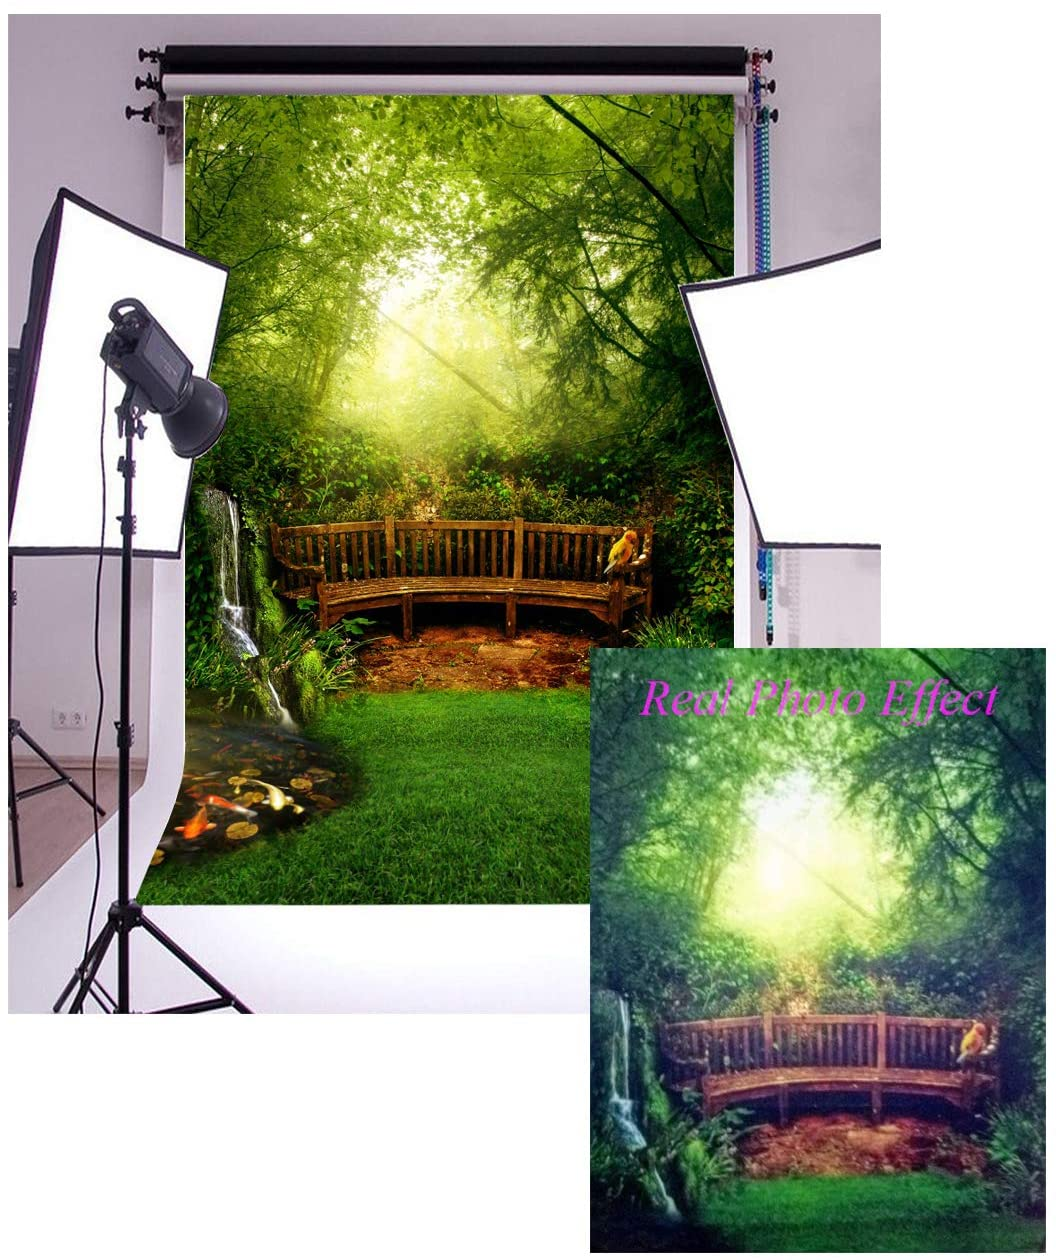 Leowefowa 3X5FT Vinyl Jungle Forest Backdrop for Photography Dreamland Trees Green Grassland Weathered Wooden Bench Fairytale Background Girls Princess Portraits Photo Studio Prop